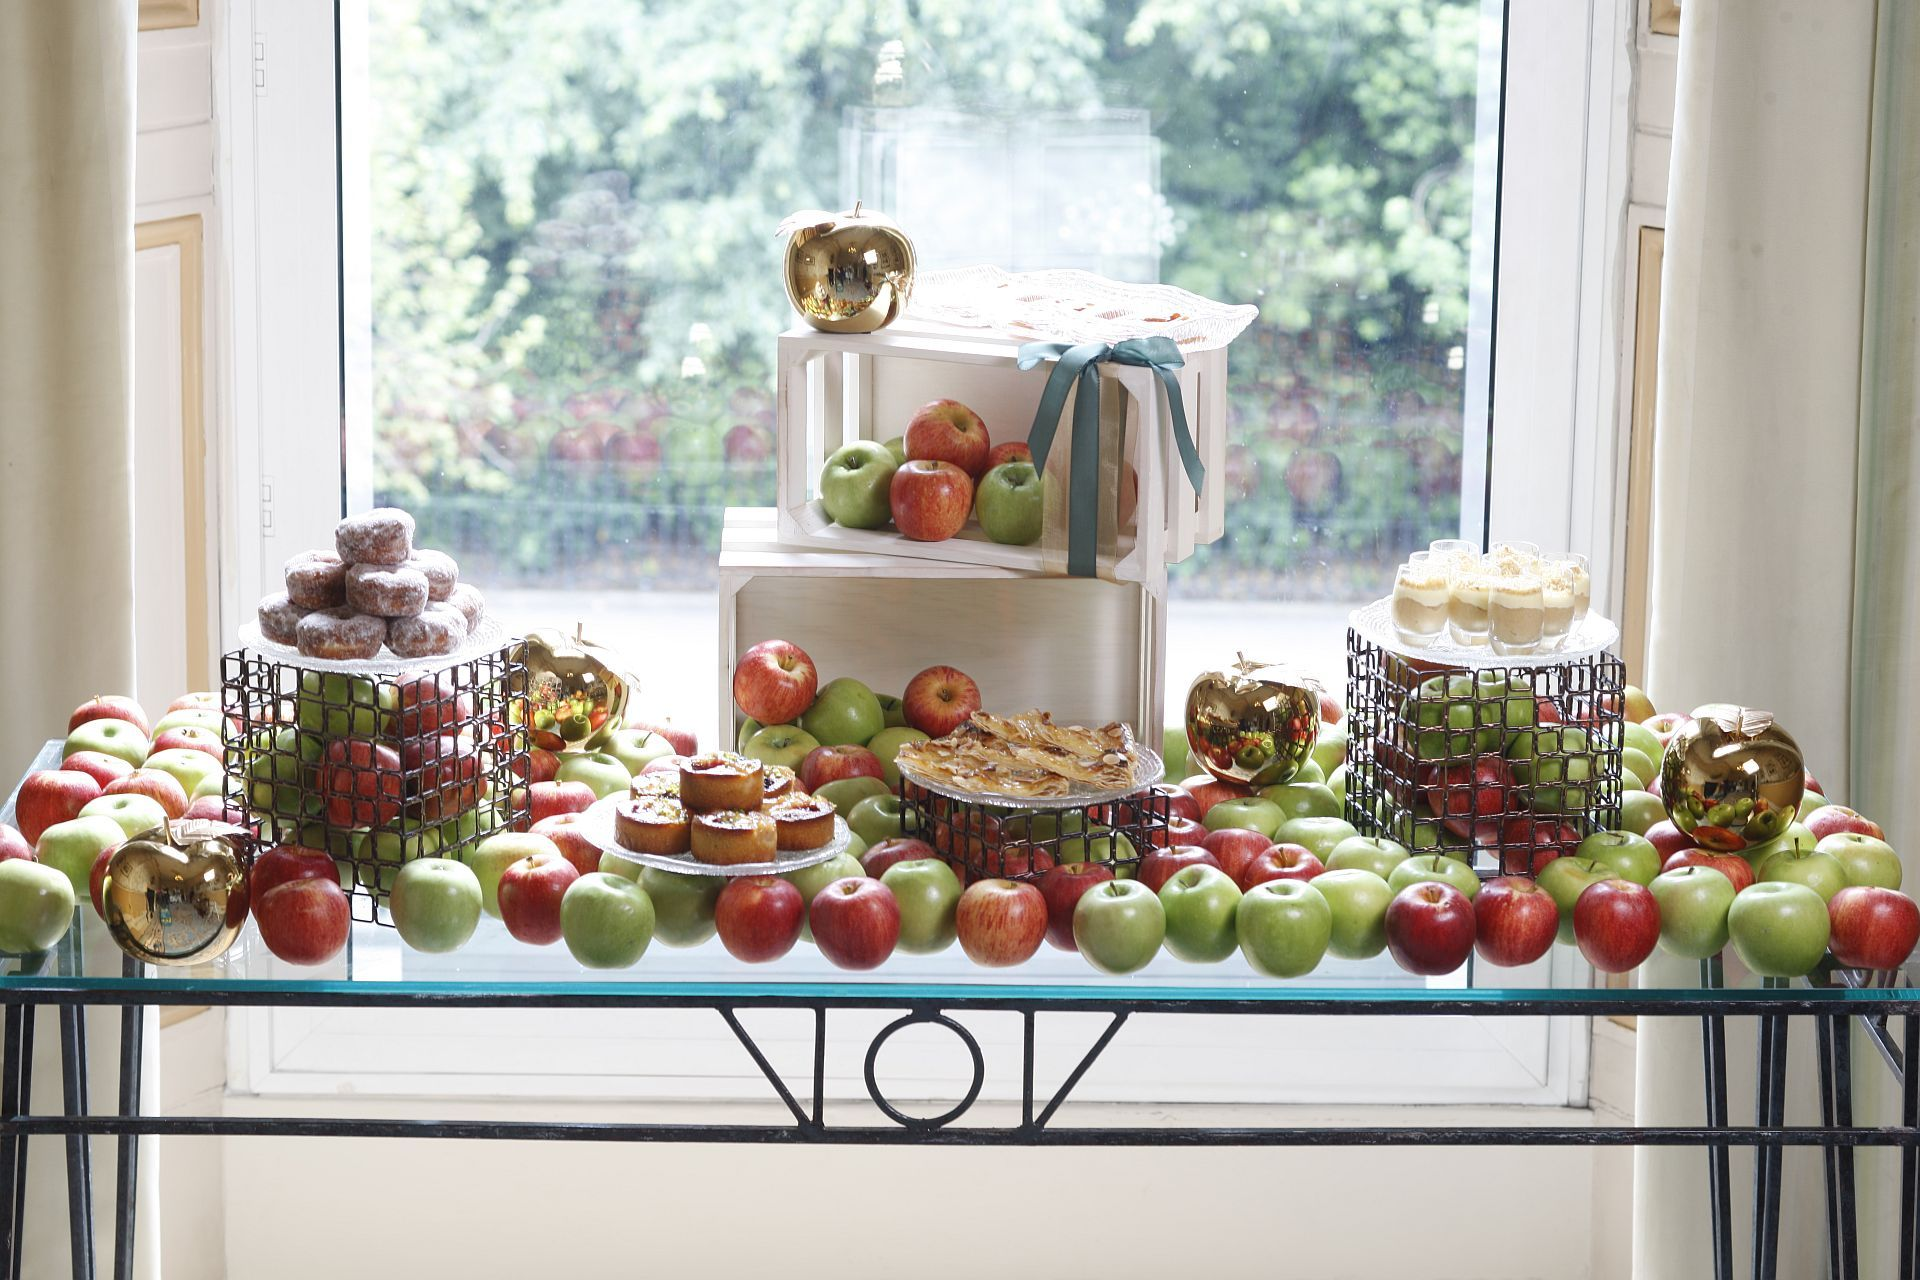 Apple Break at the Great Room enjoy at The Shelbourne Hotel as a